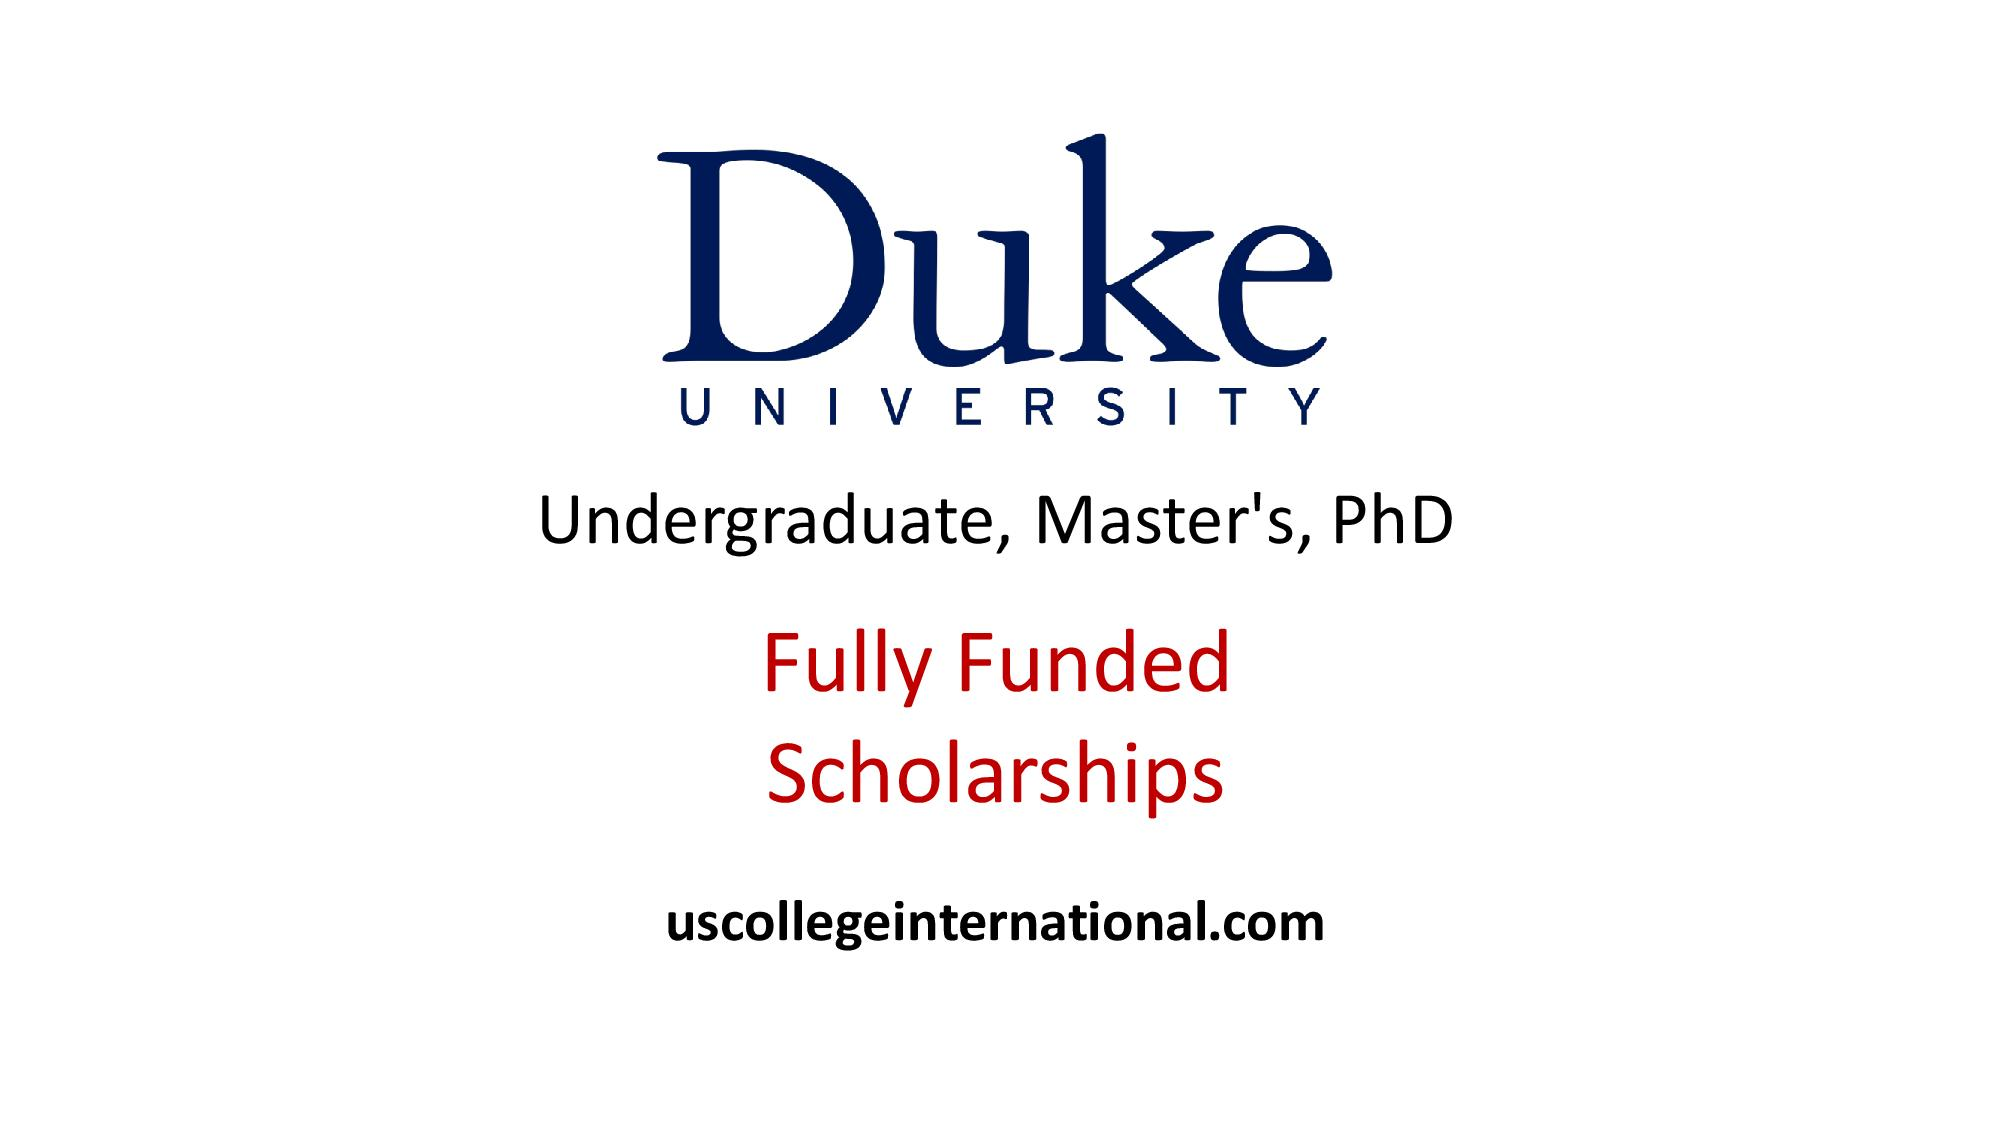 Duke University Scholarships 2019 (Full Ride) - Scholarships for